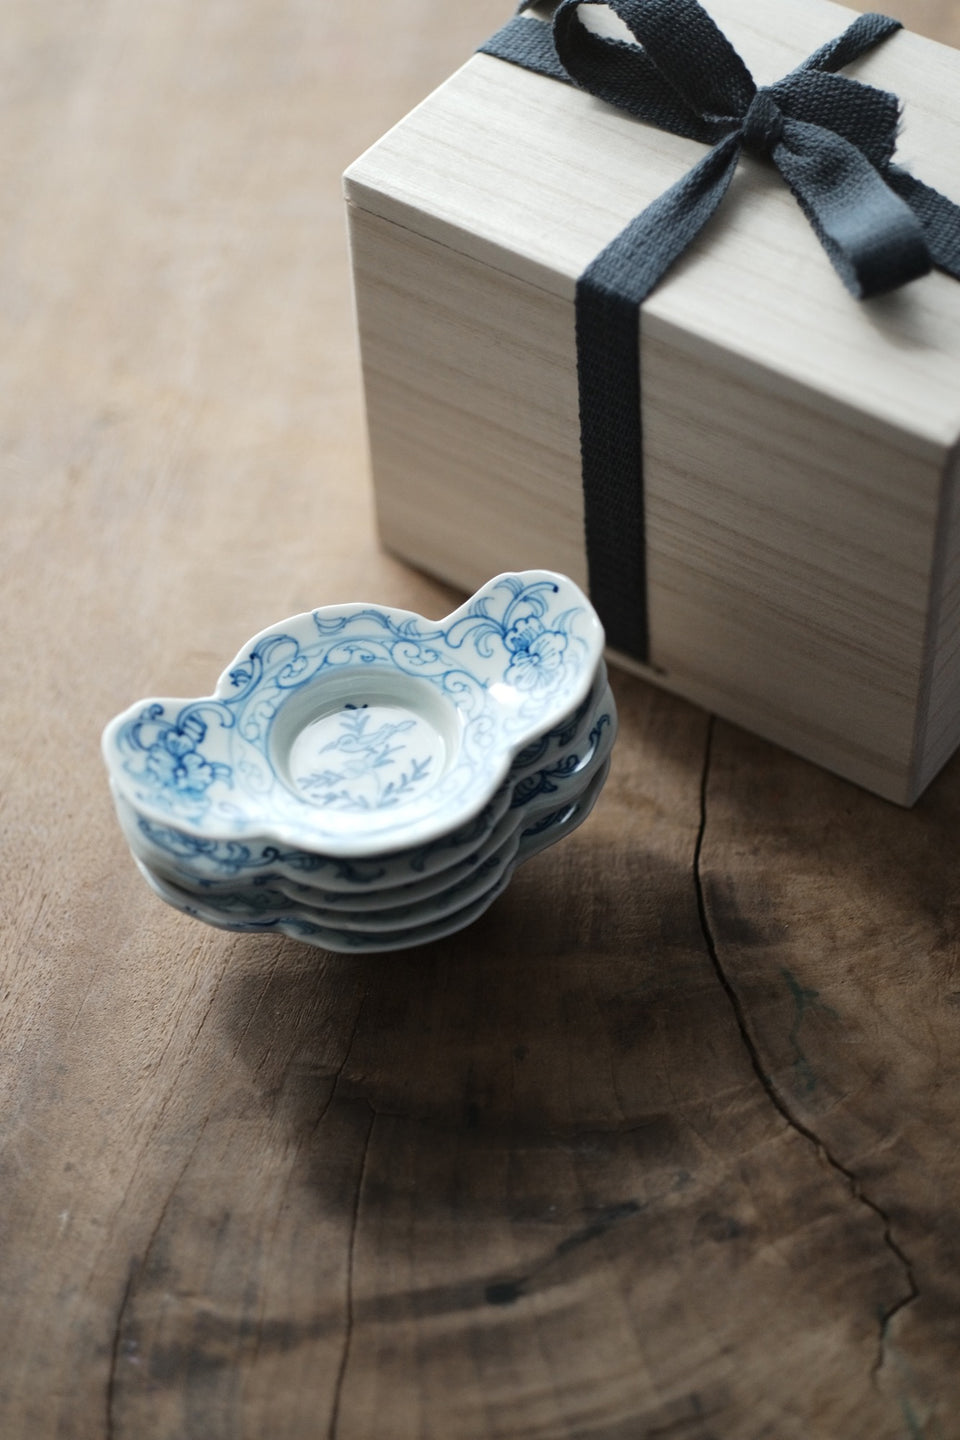 Qinghua Camellia leaf and bird coaster